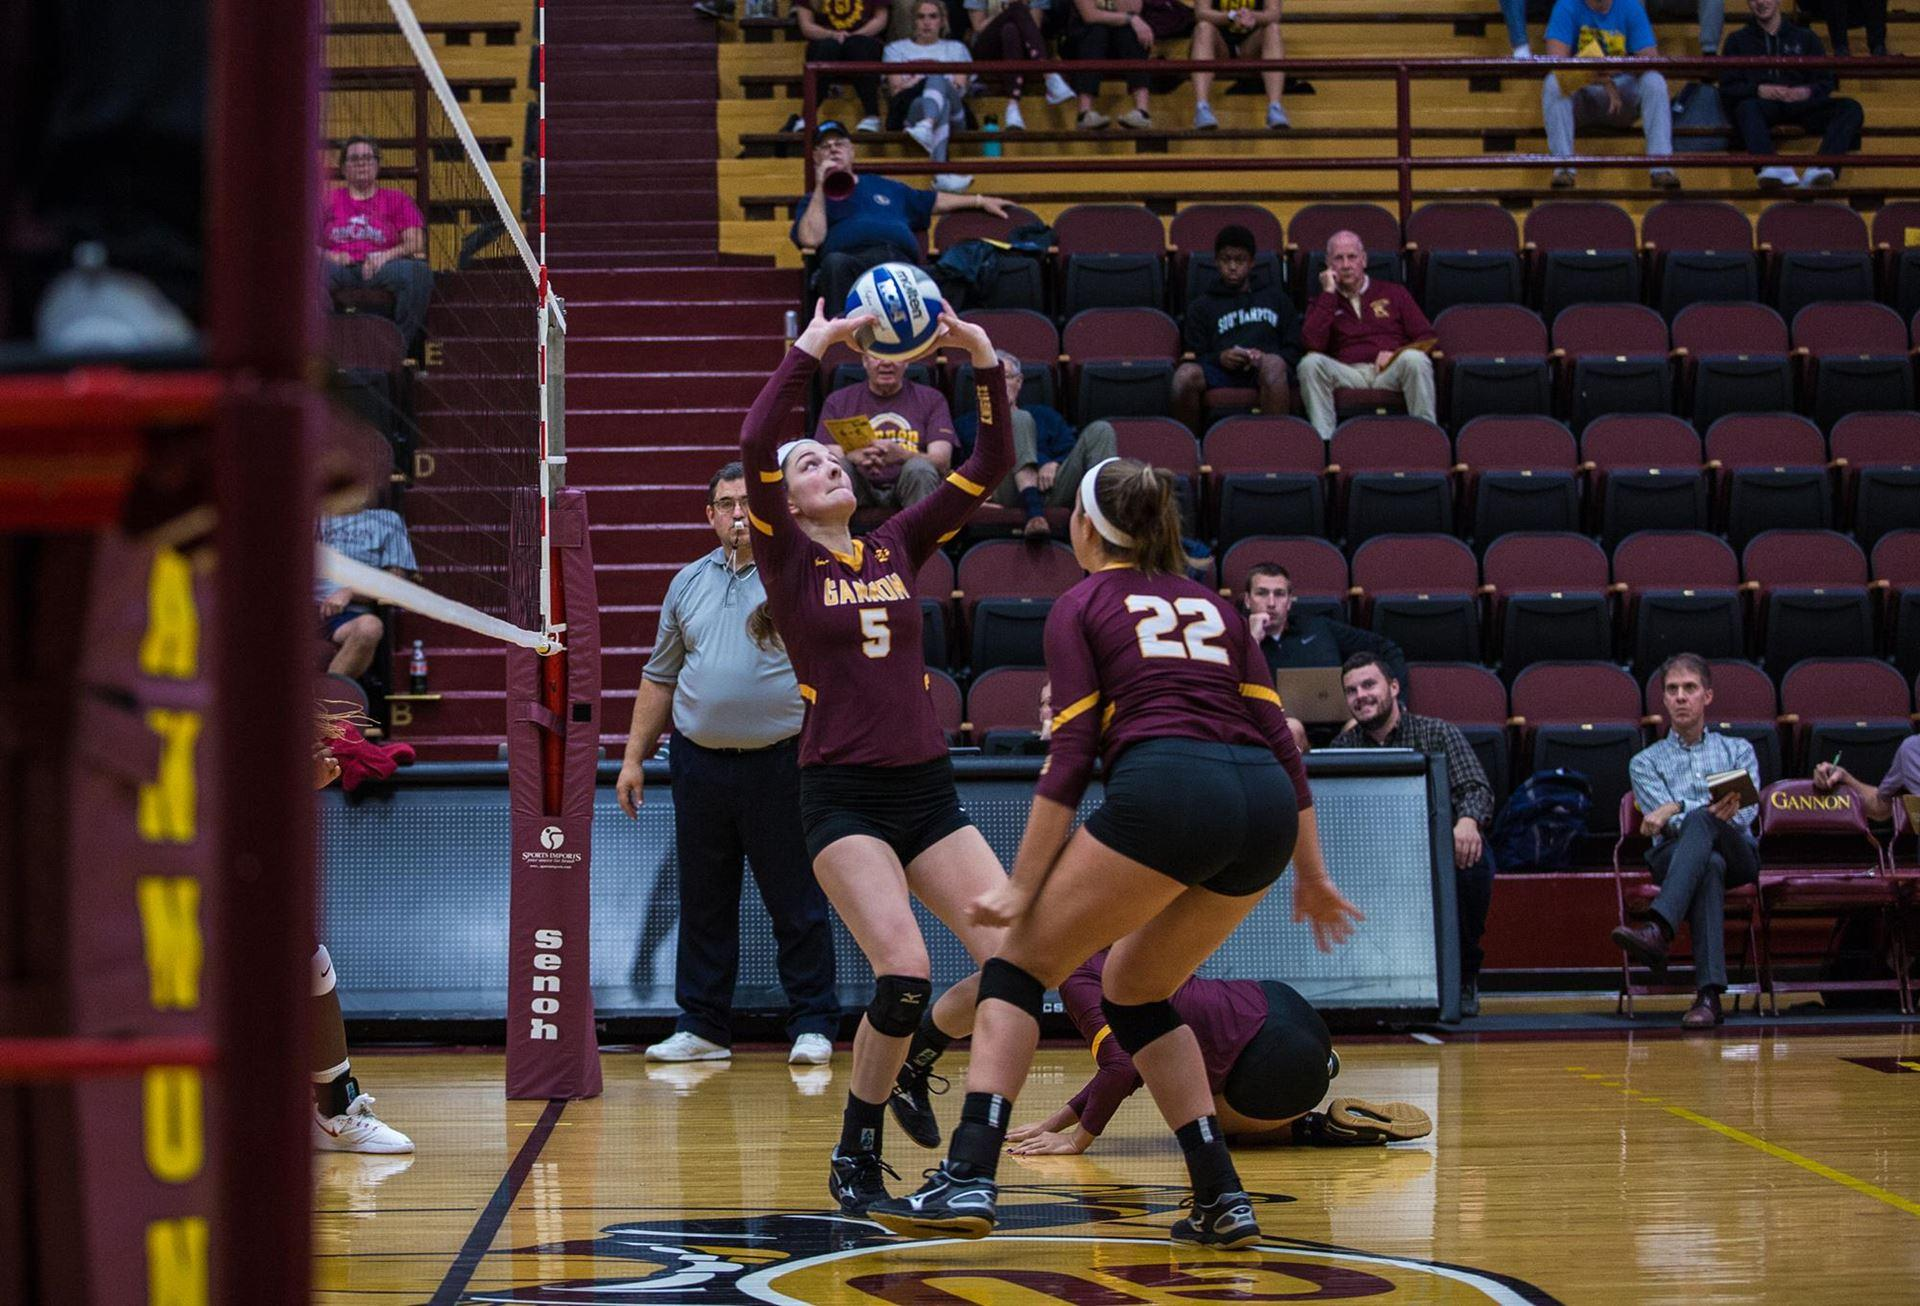 Gannon's volleyball opens PSAC tourney with win